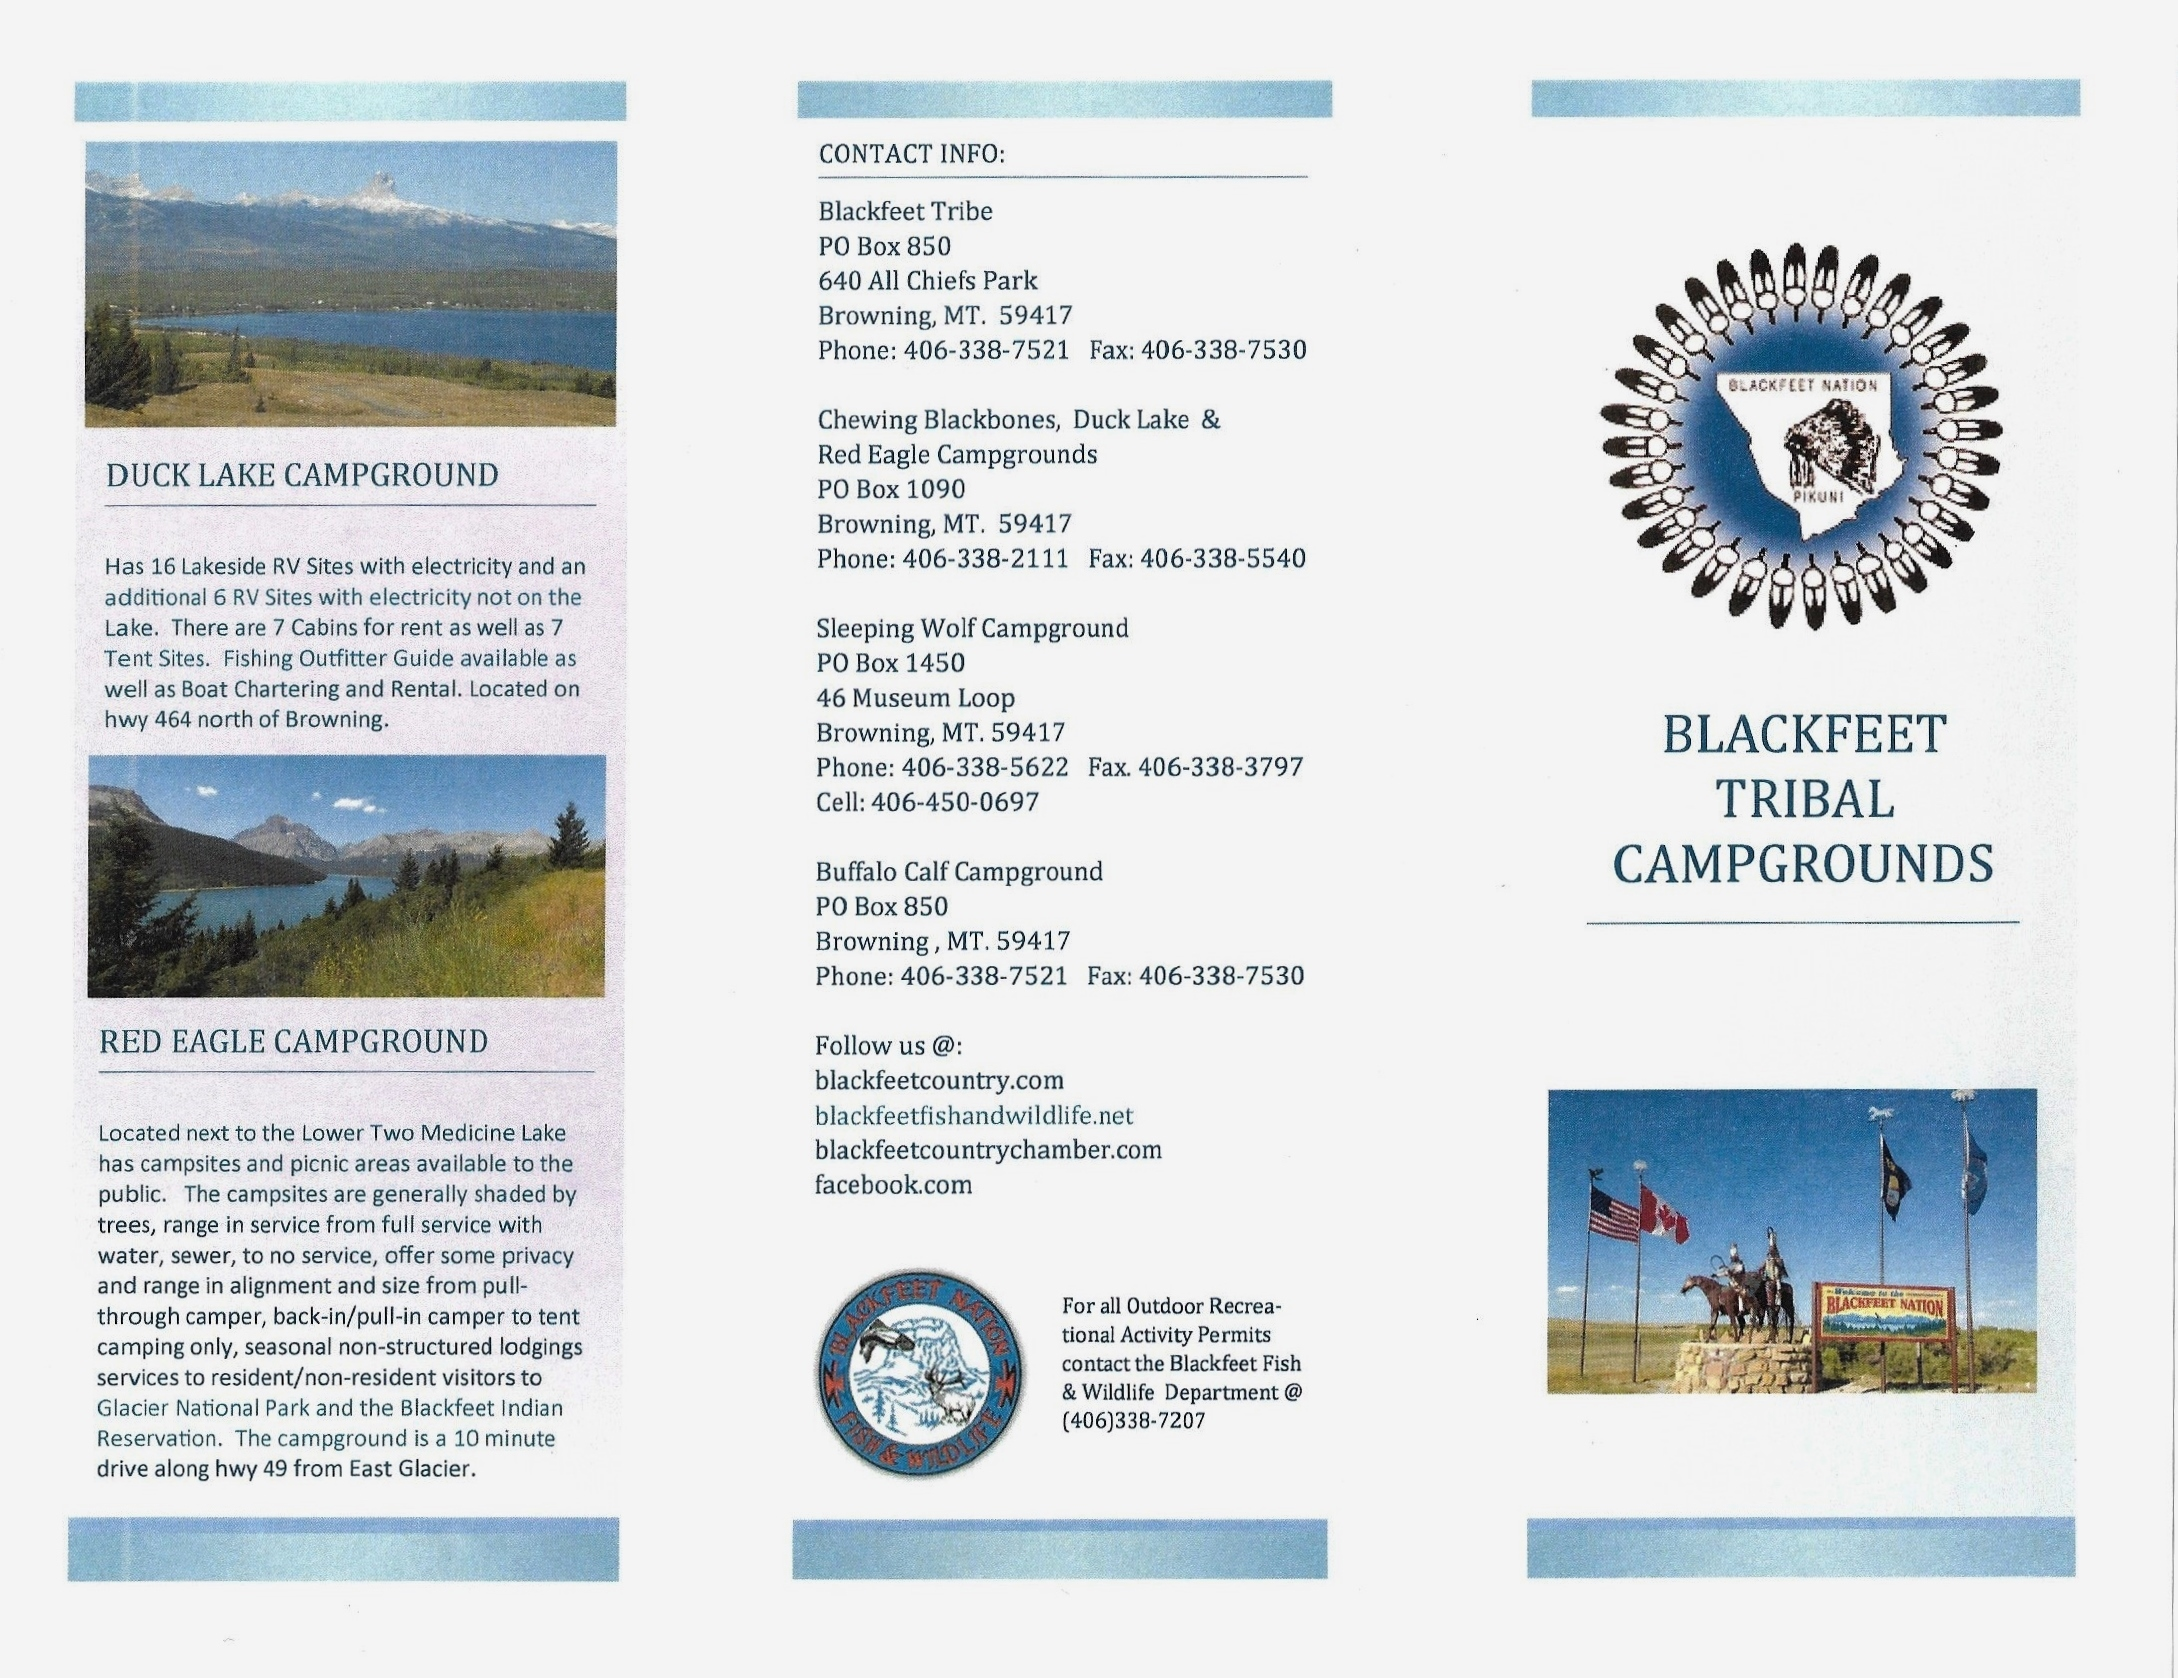 Blackfeet Tribal Campgrounds